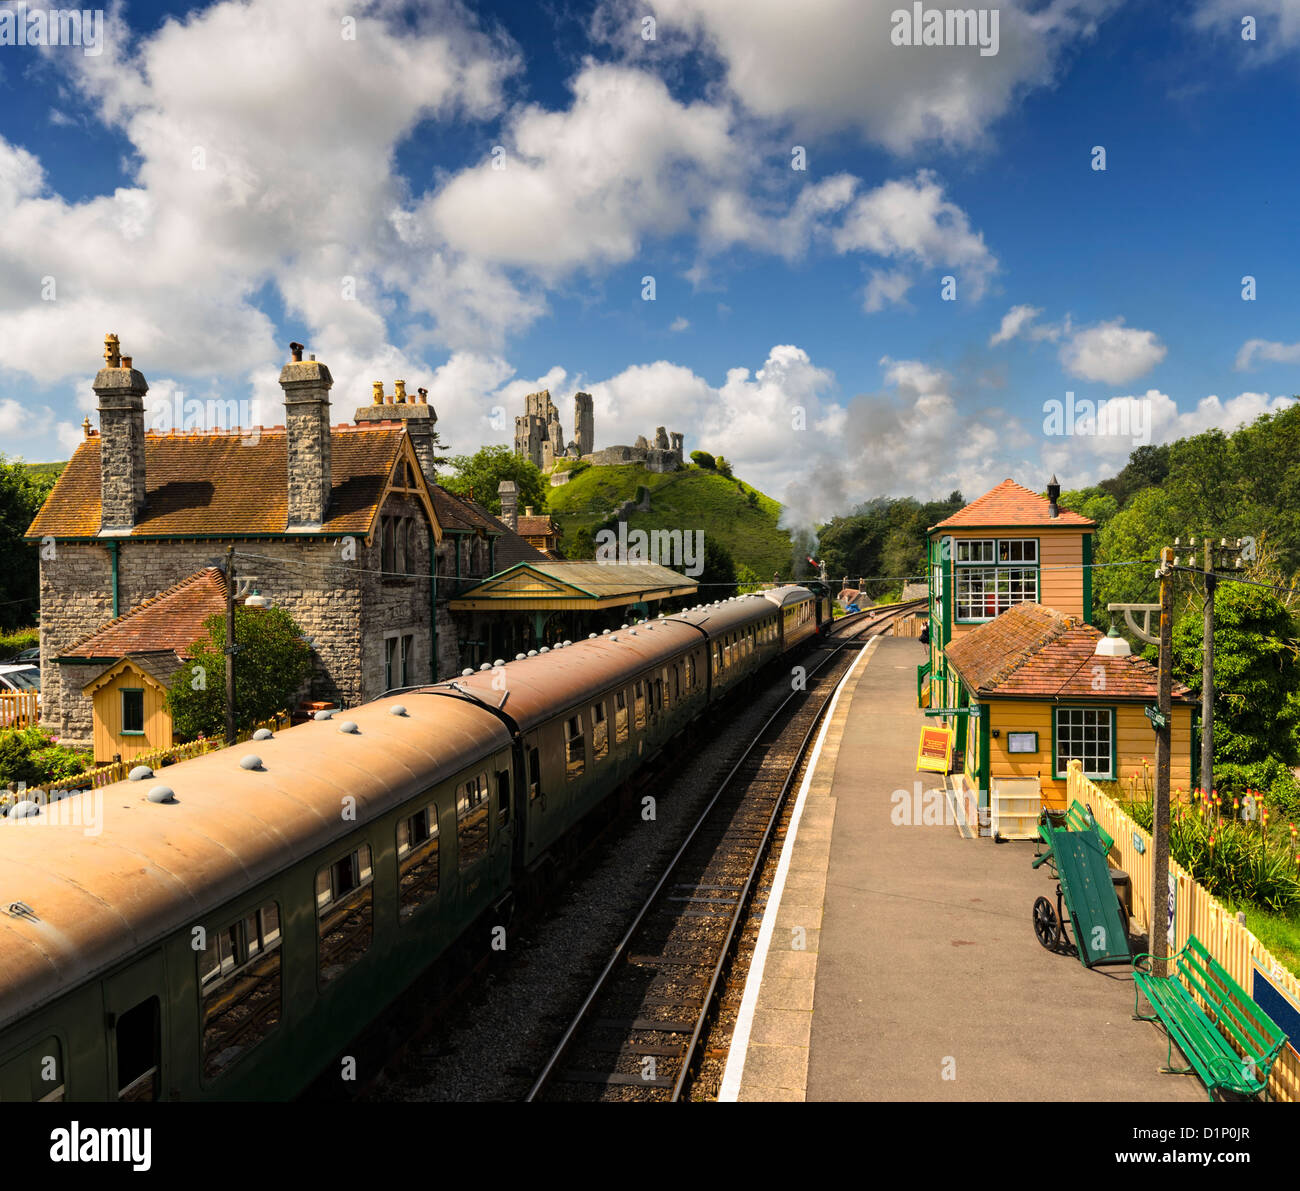 A steam train pulls in to the station at Corfe Castle in Dorset - Stock Image